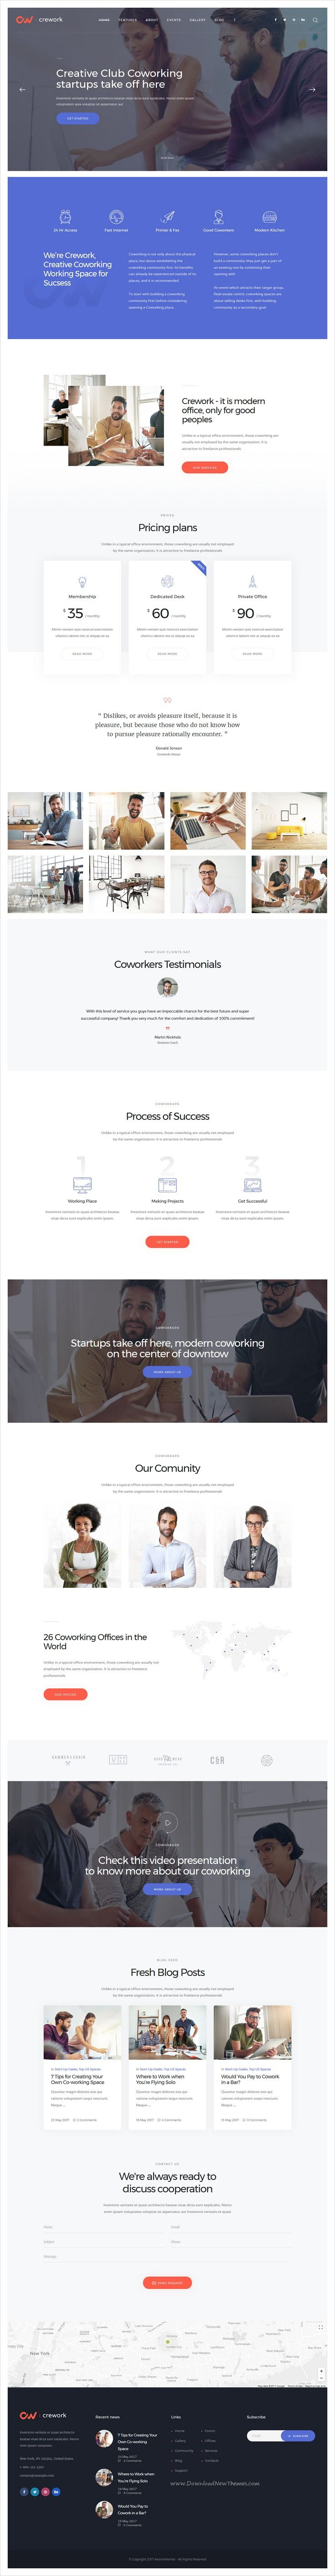 Crework is clean and modern design 3in1 responsive #WordPress theme for creative co-#working, open #office, workshop and conferences website download now..